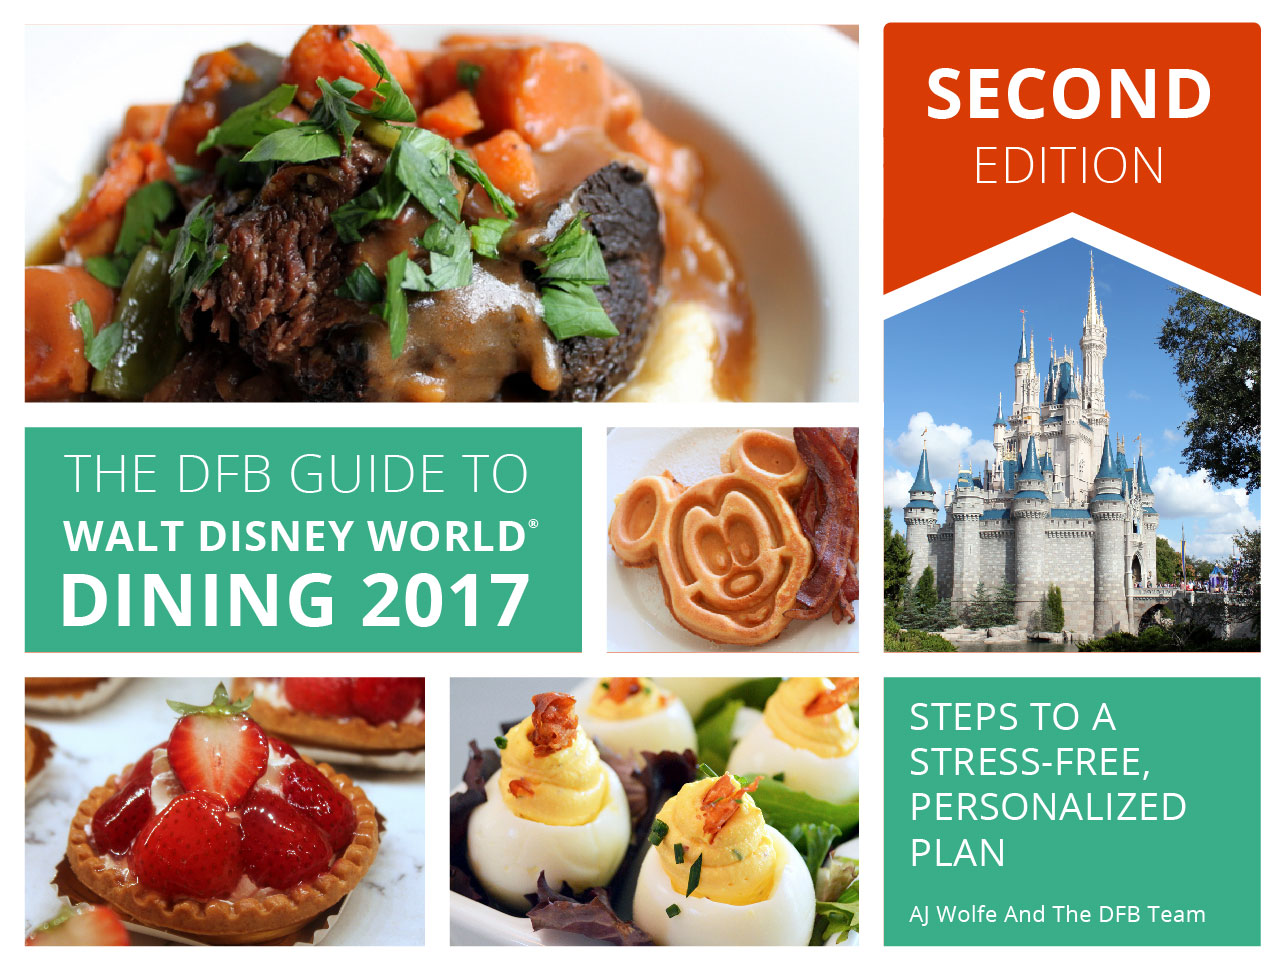 Free disney dining plan 2016 dates - Dfb Guide 2017 Second Edition Cover